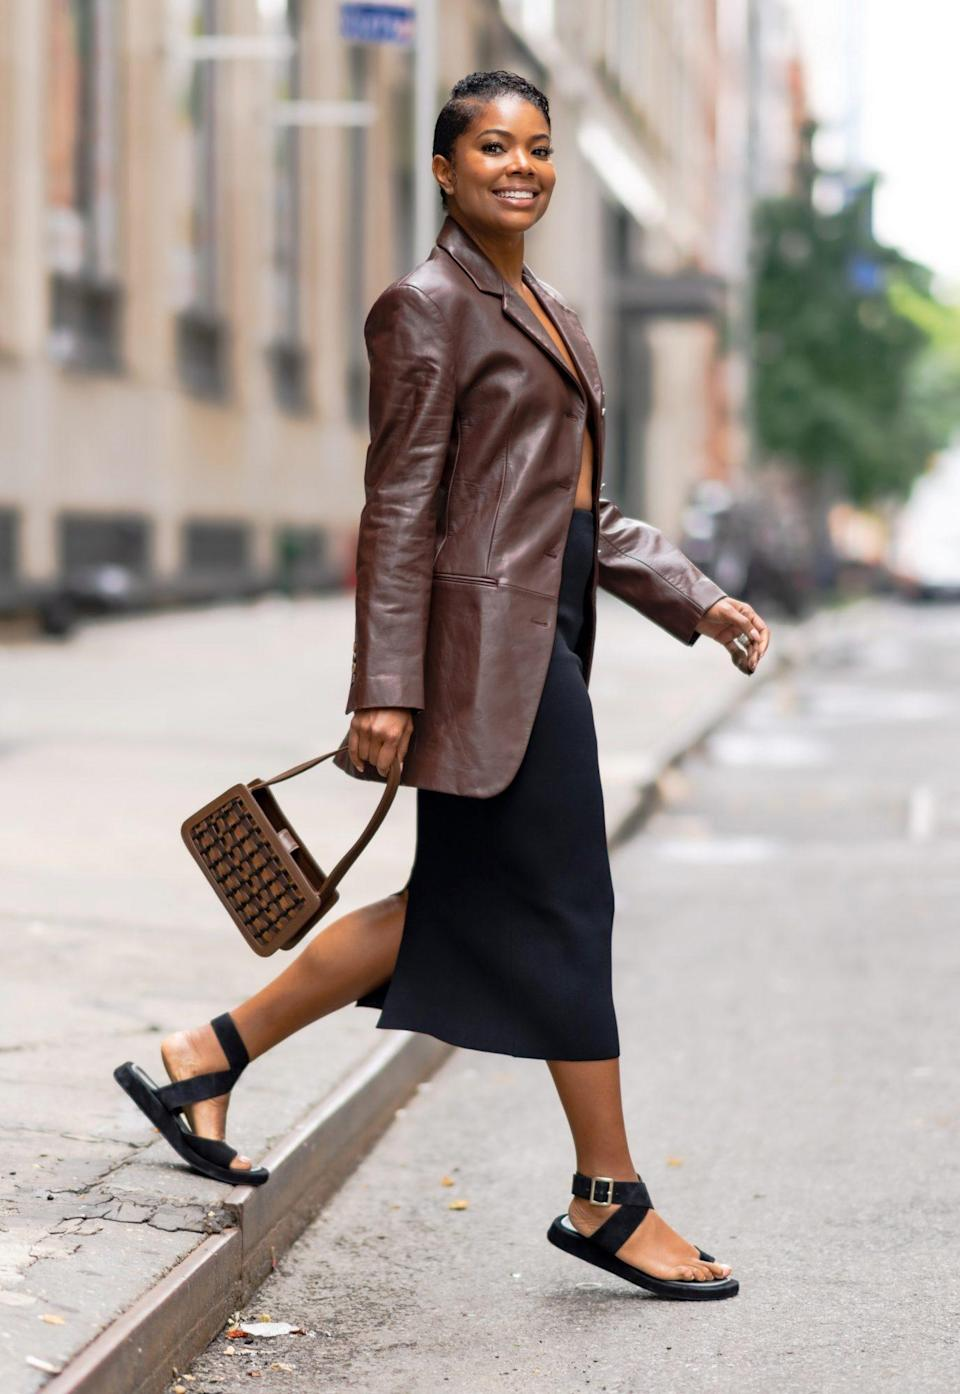 <p>Gabrielle Union pairs a stylish leather Sportmax jacket with a black skirt as she heads out in N.Y.C. on July 25.</p>